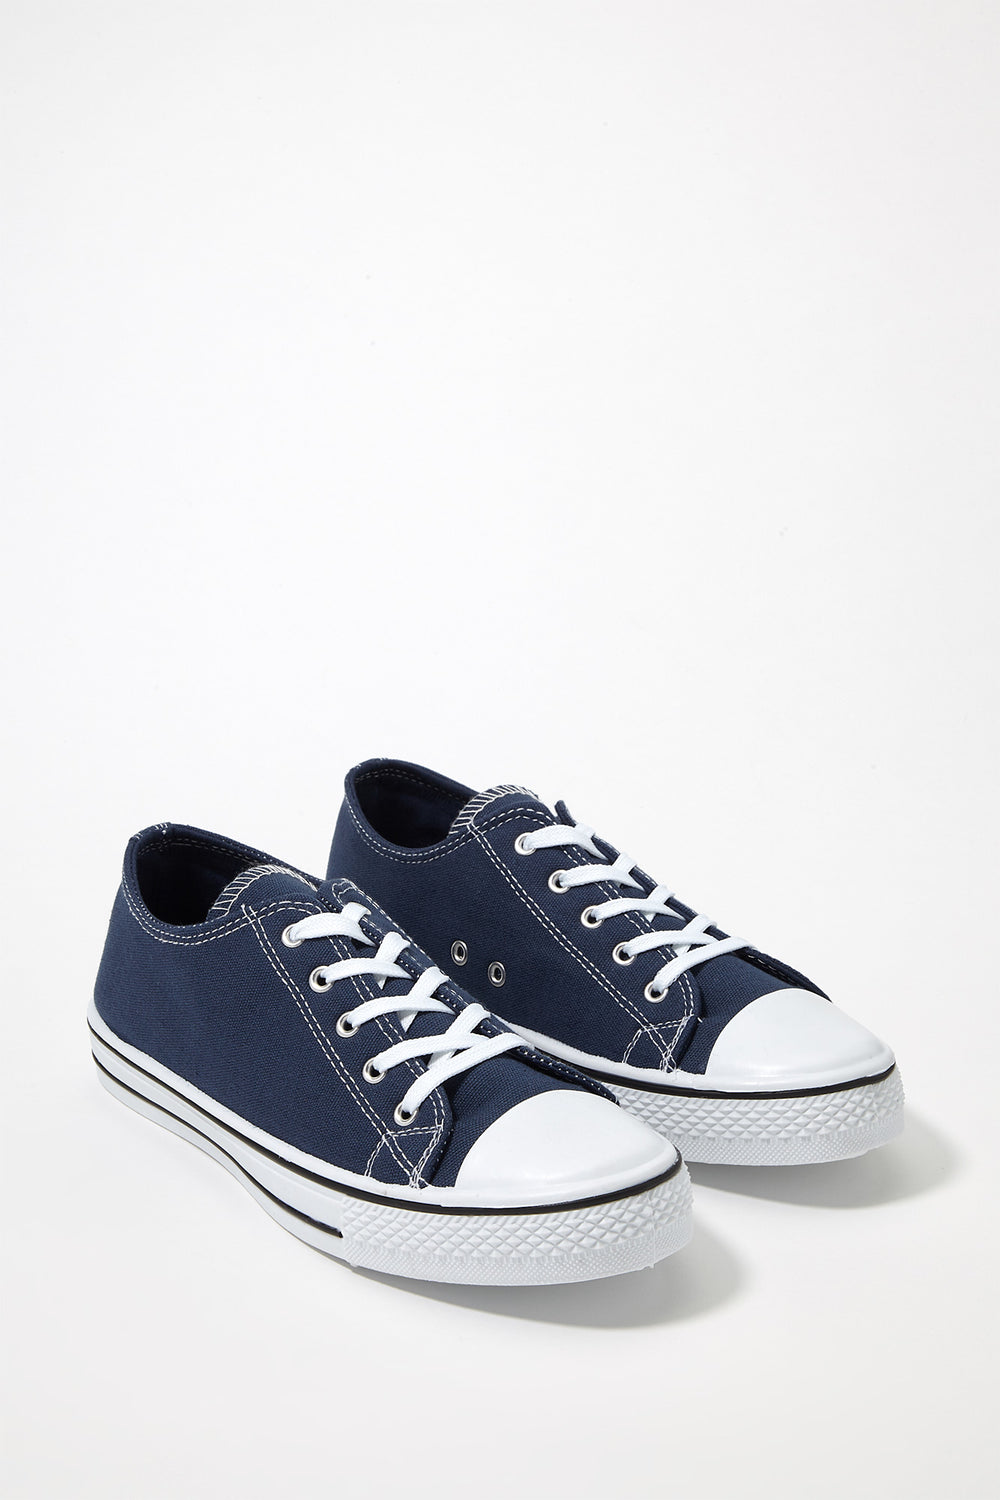 Printed Canvas Lace-Up Sneaker Navy